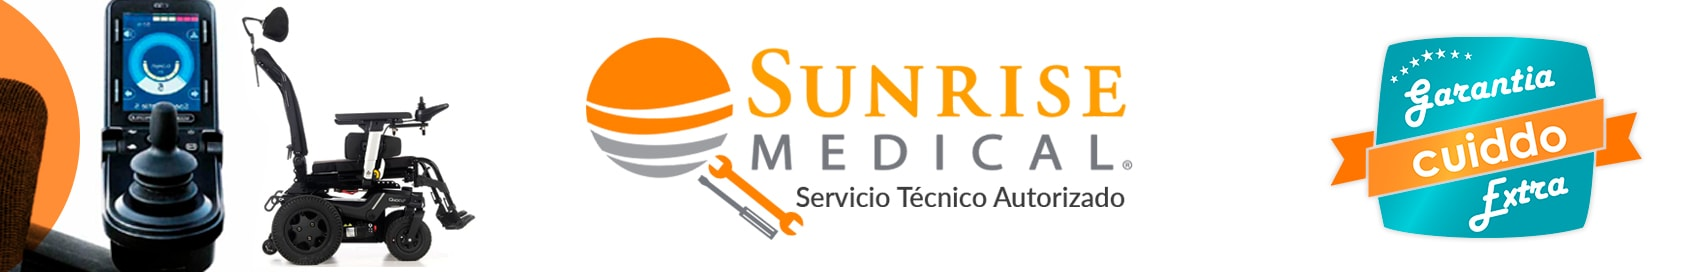 Servicio tecnico autorizado Sunrise Medical